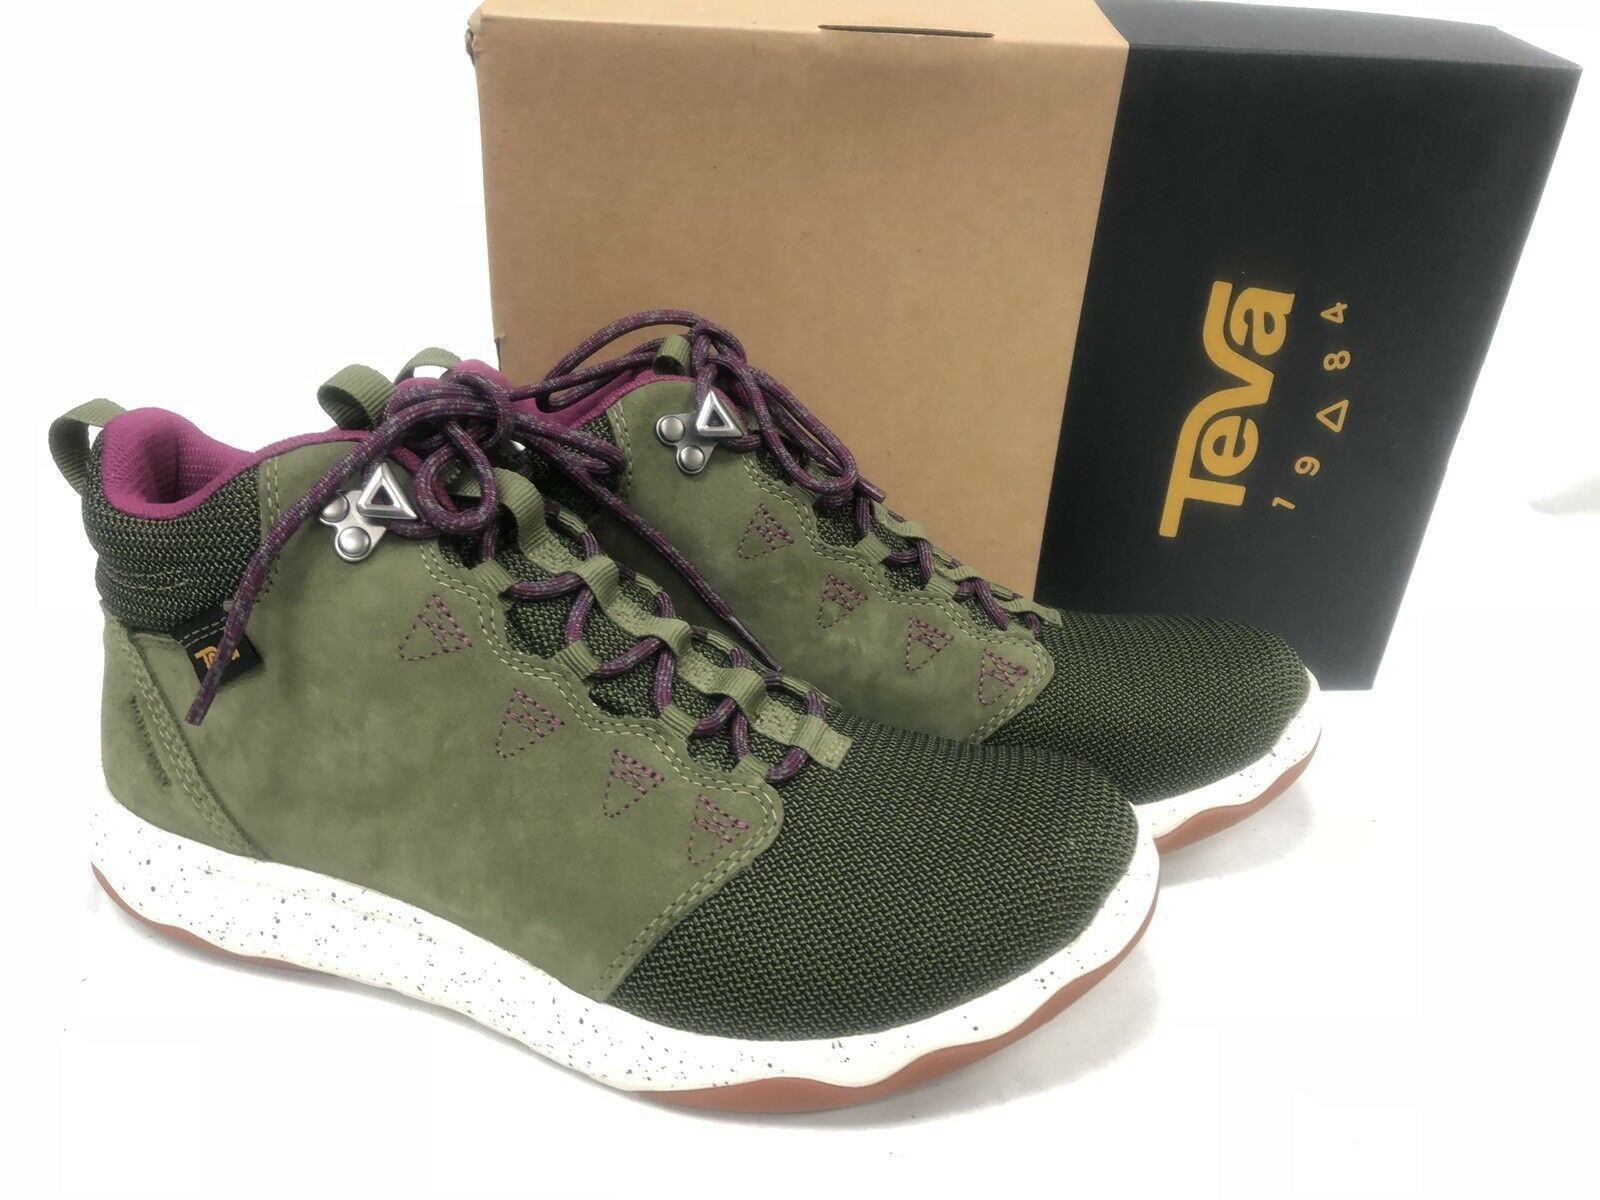 TEVA ARROWOOD MID WP Olive Green LEATHER TRAIL HIKING SHOES 1012483 size 7 11